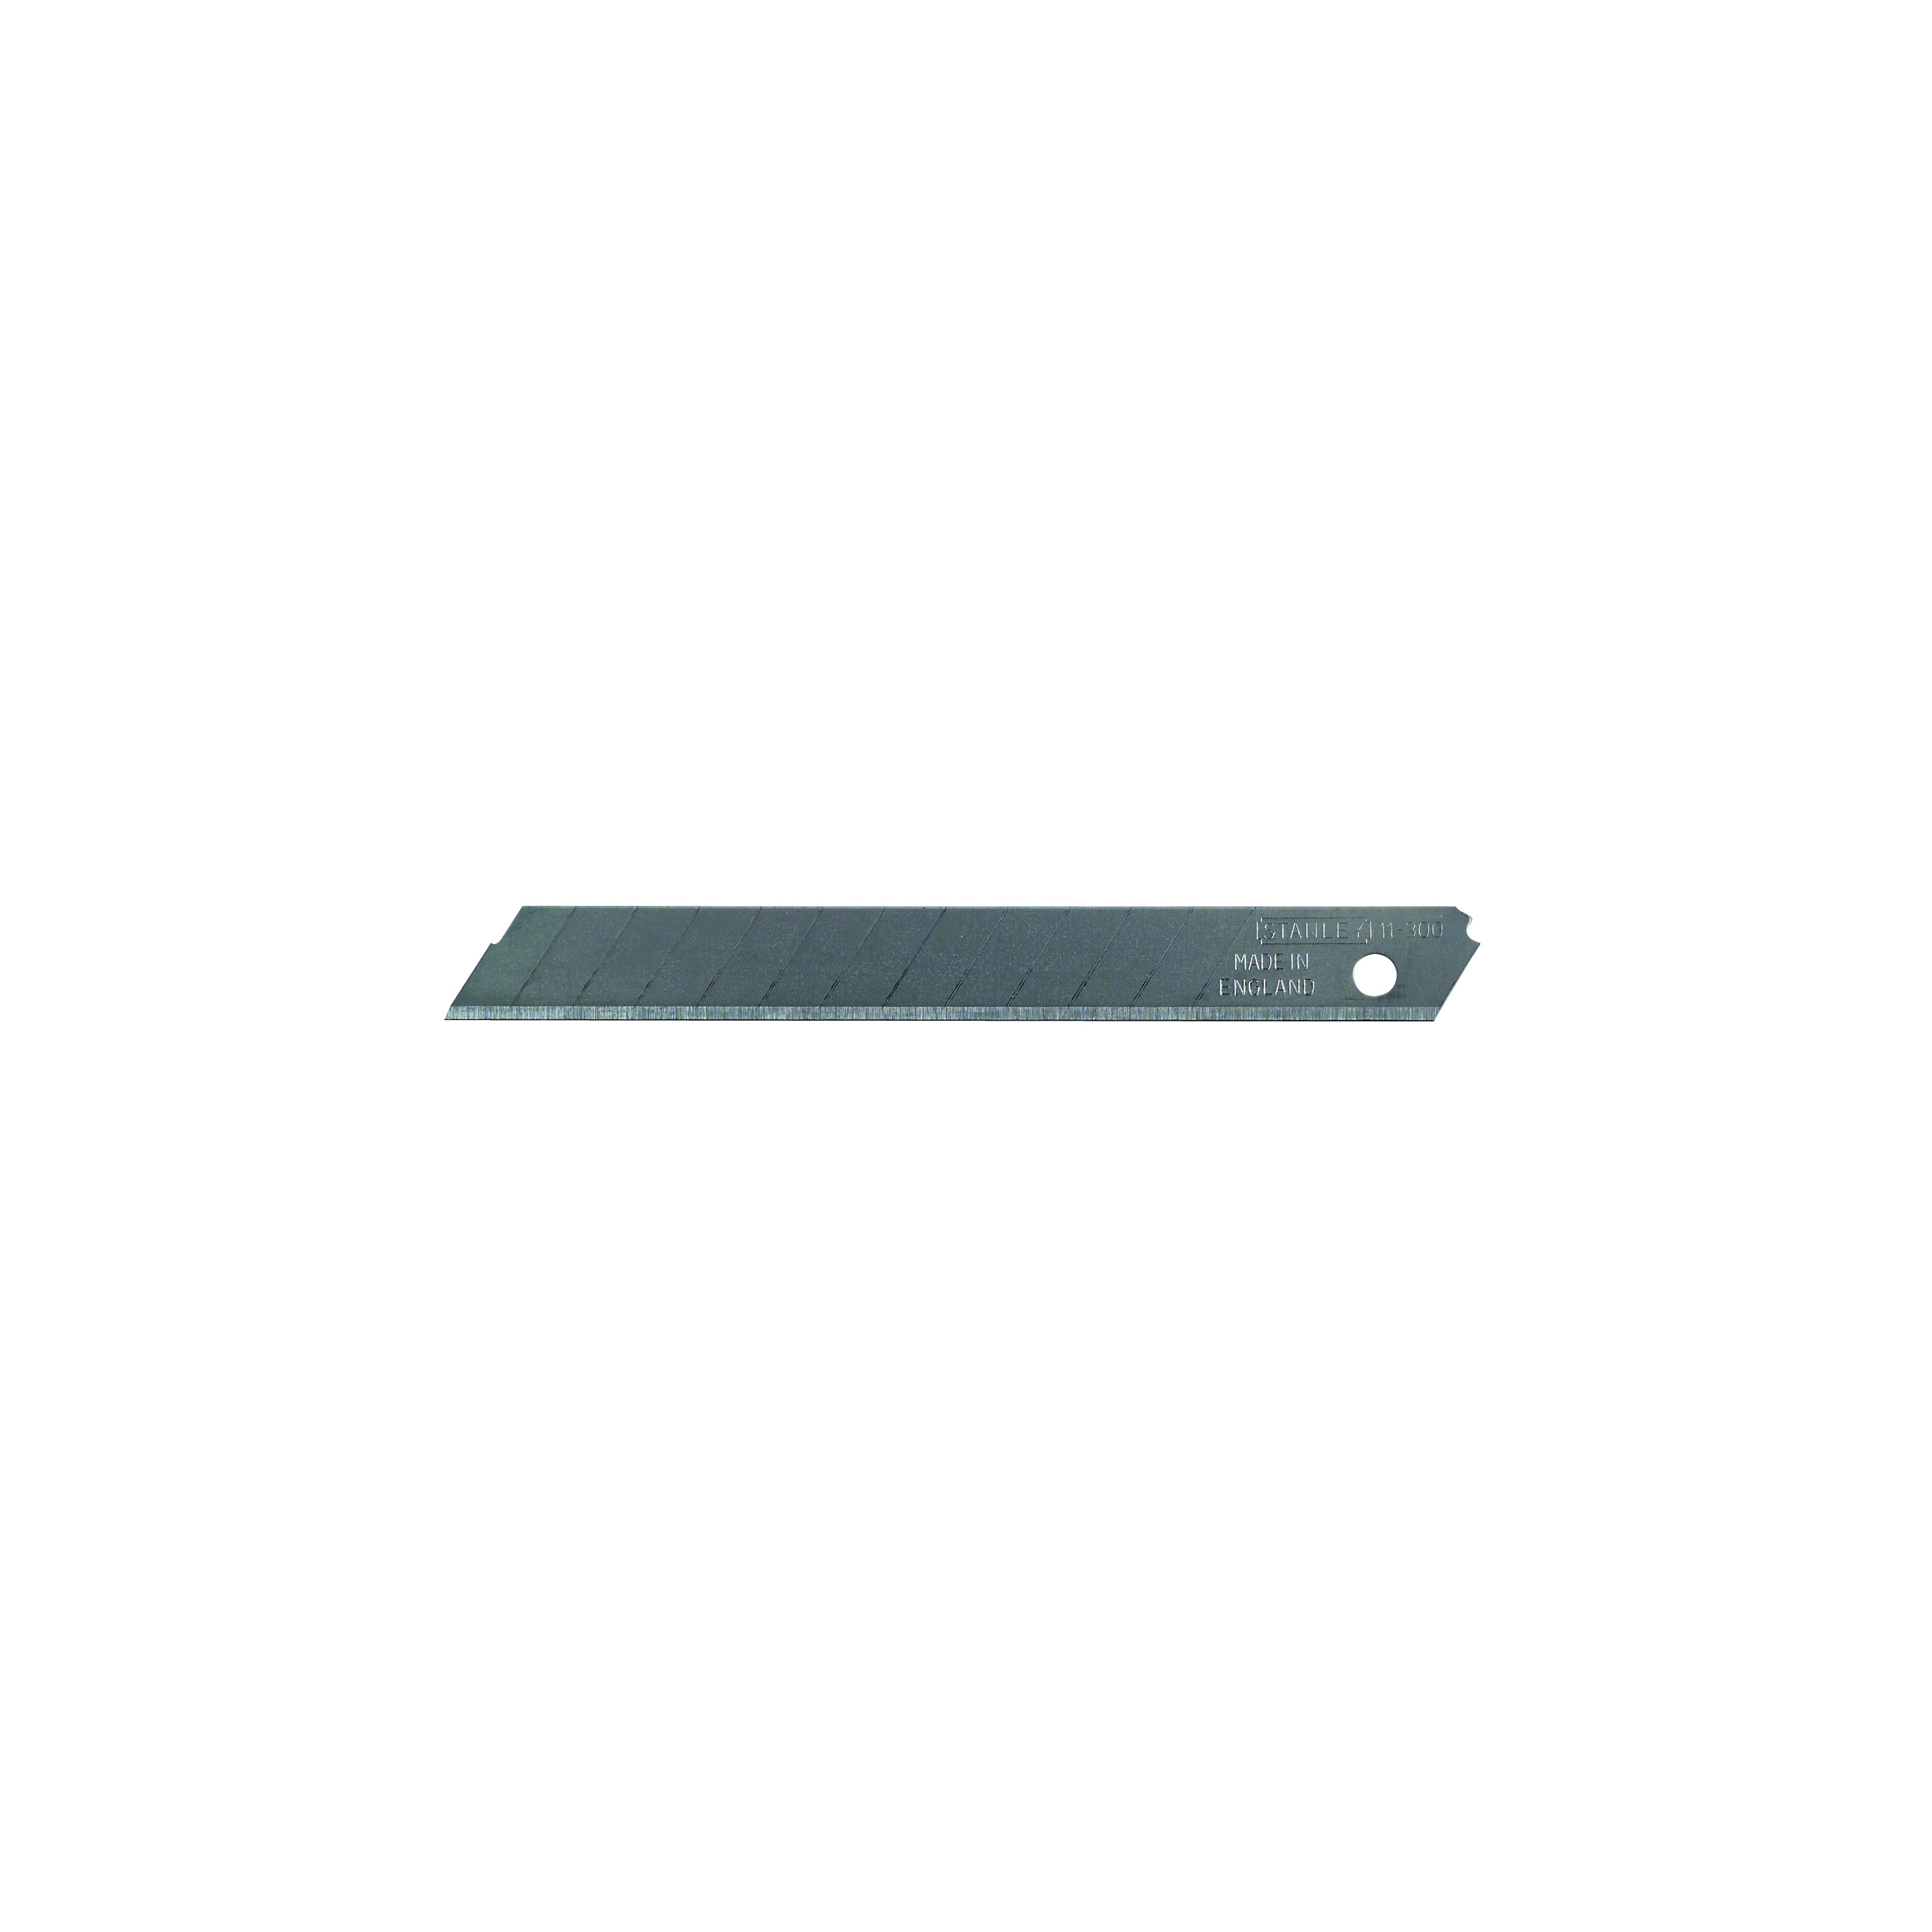 Picture of STANLEY 11-300 Replacement Blade, 9 mm, 3-1/4 in L, Carbon Steel, 13 -Point, 3/PK, Carded